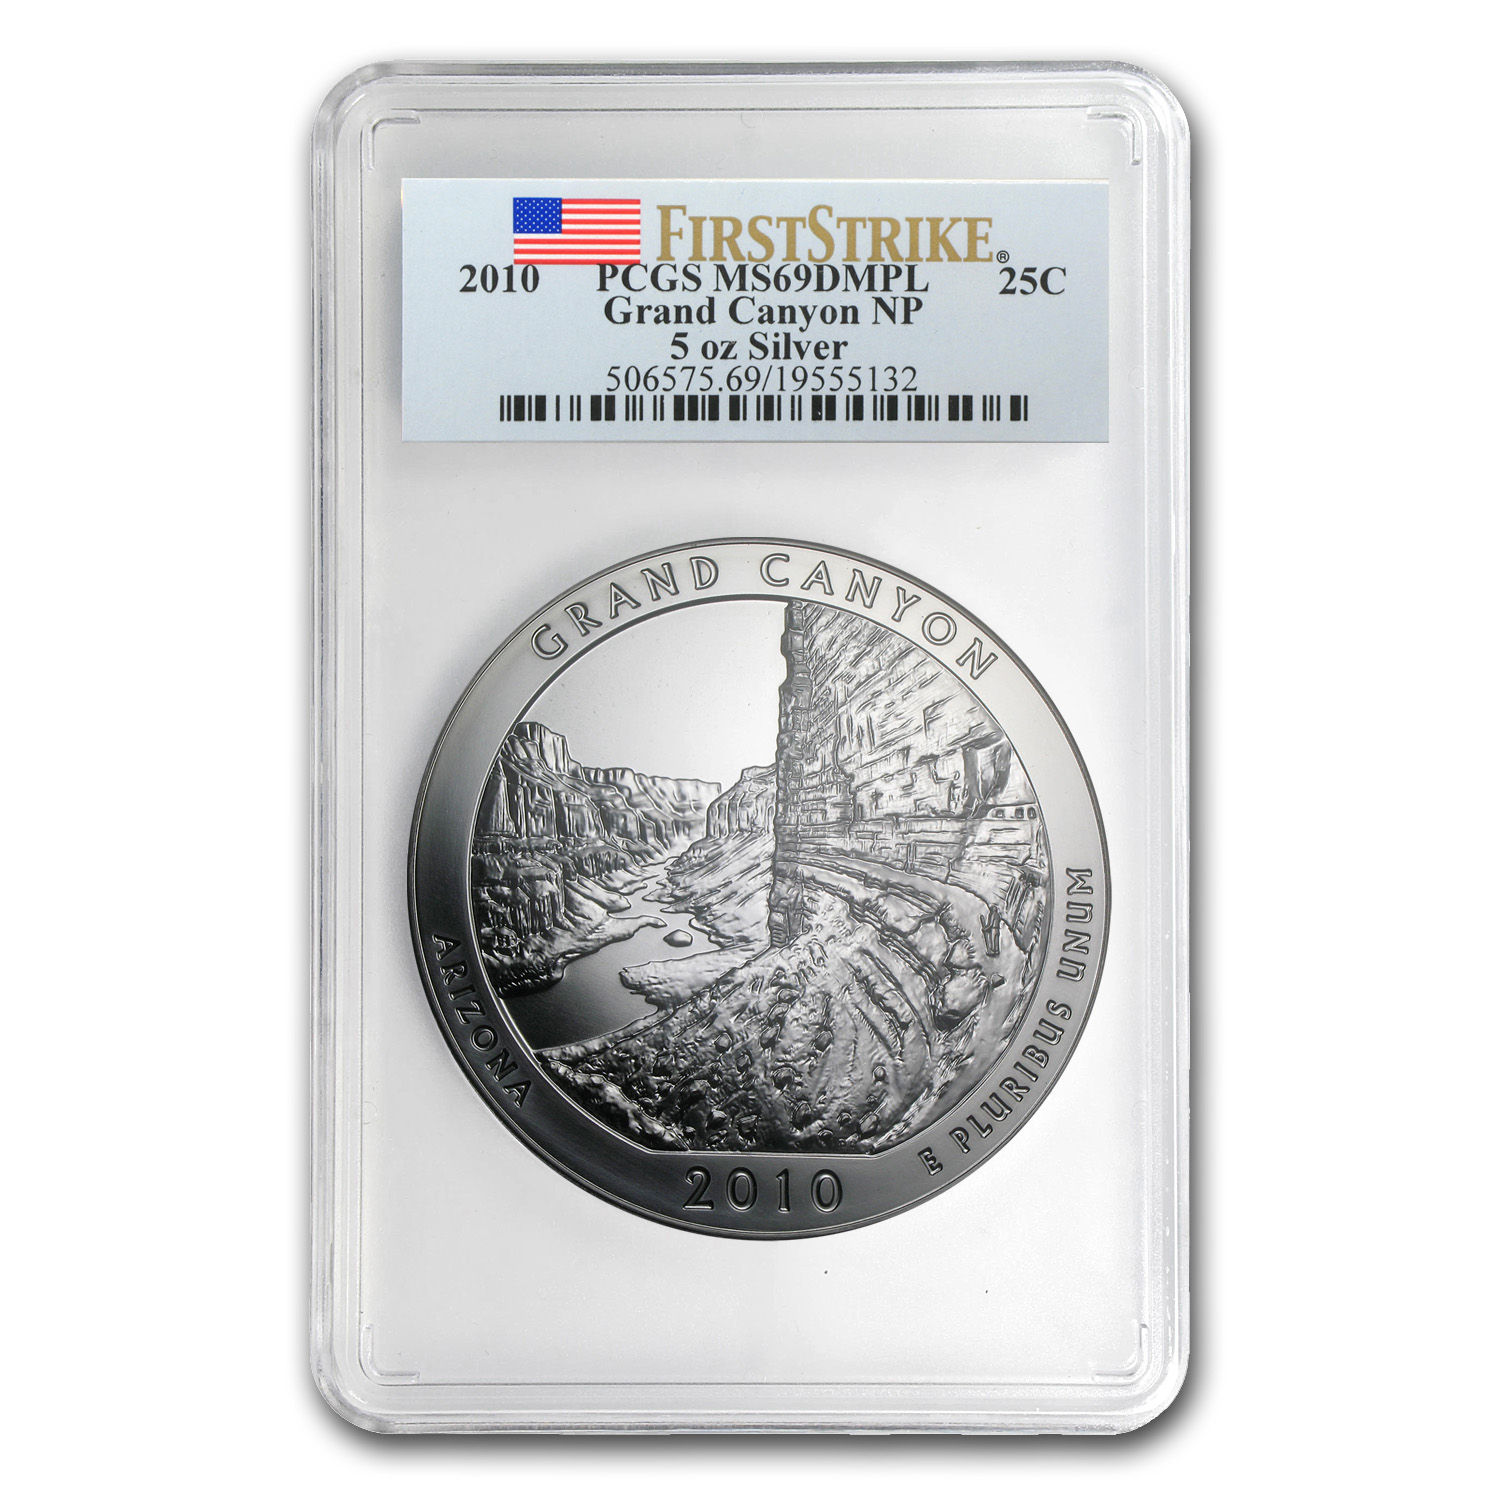 2010 5 oz Silver ATB Grand Canyon PCGS MS-69 DMPL First Strike